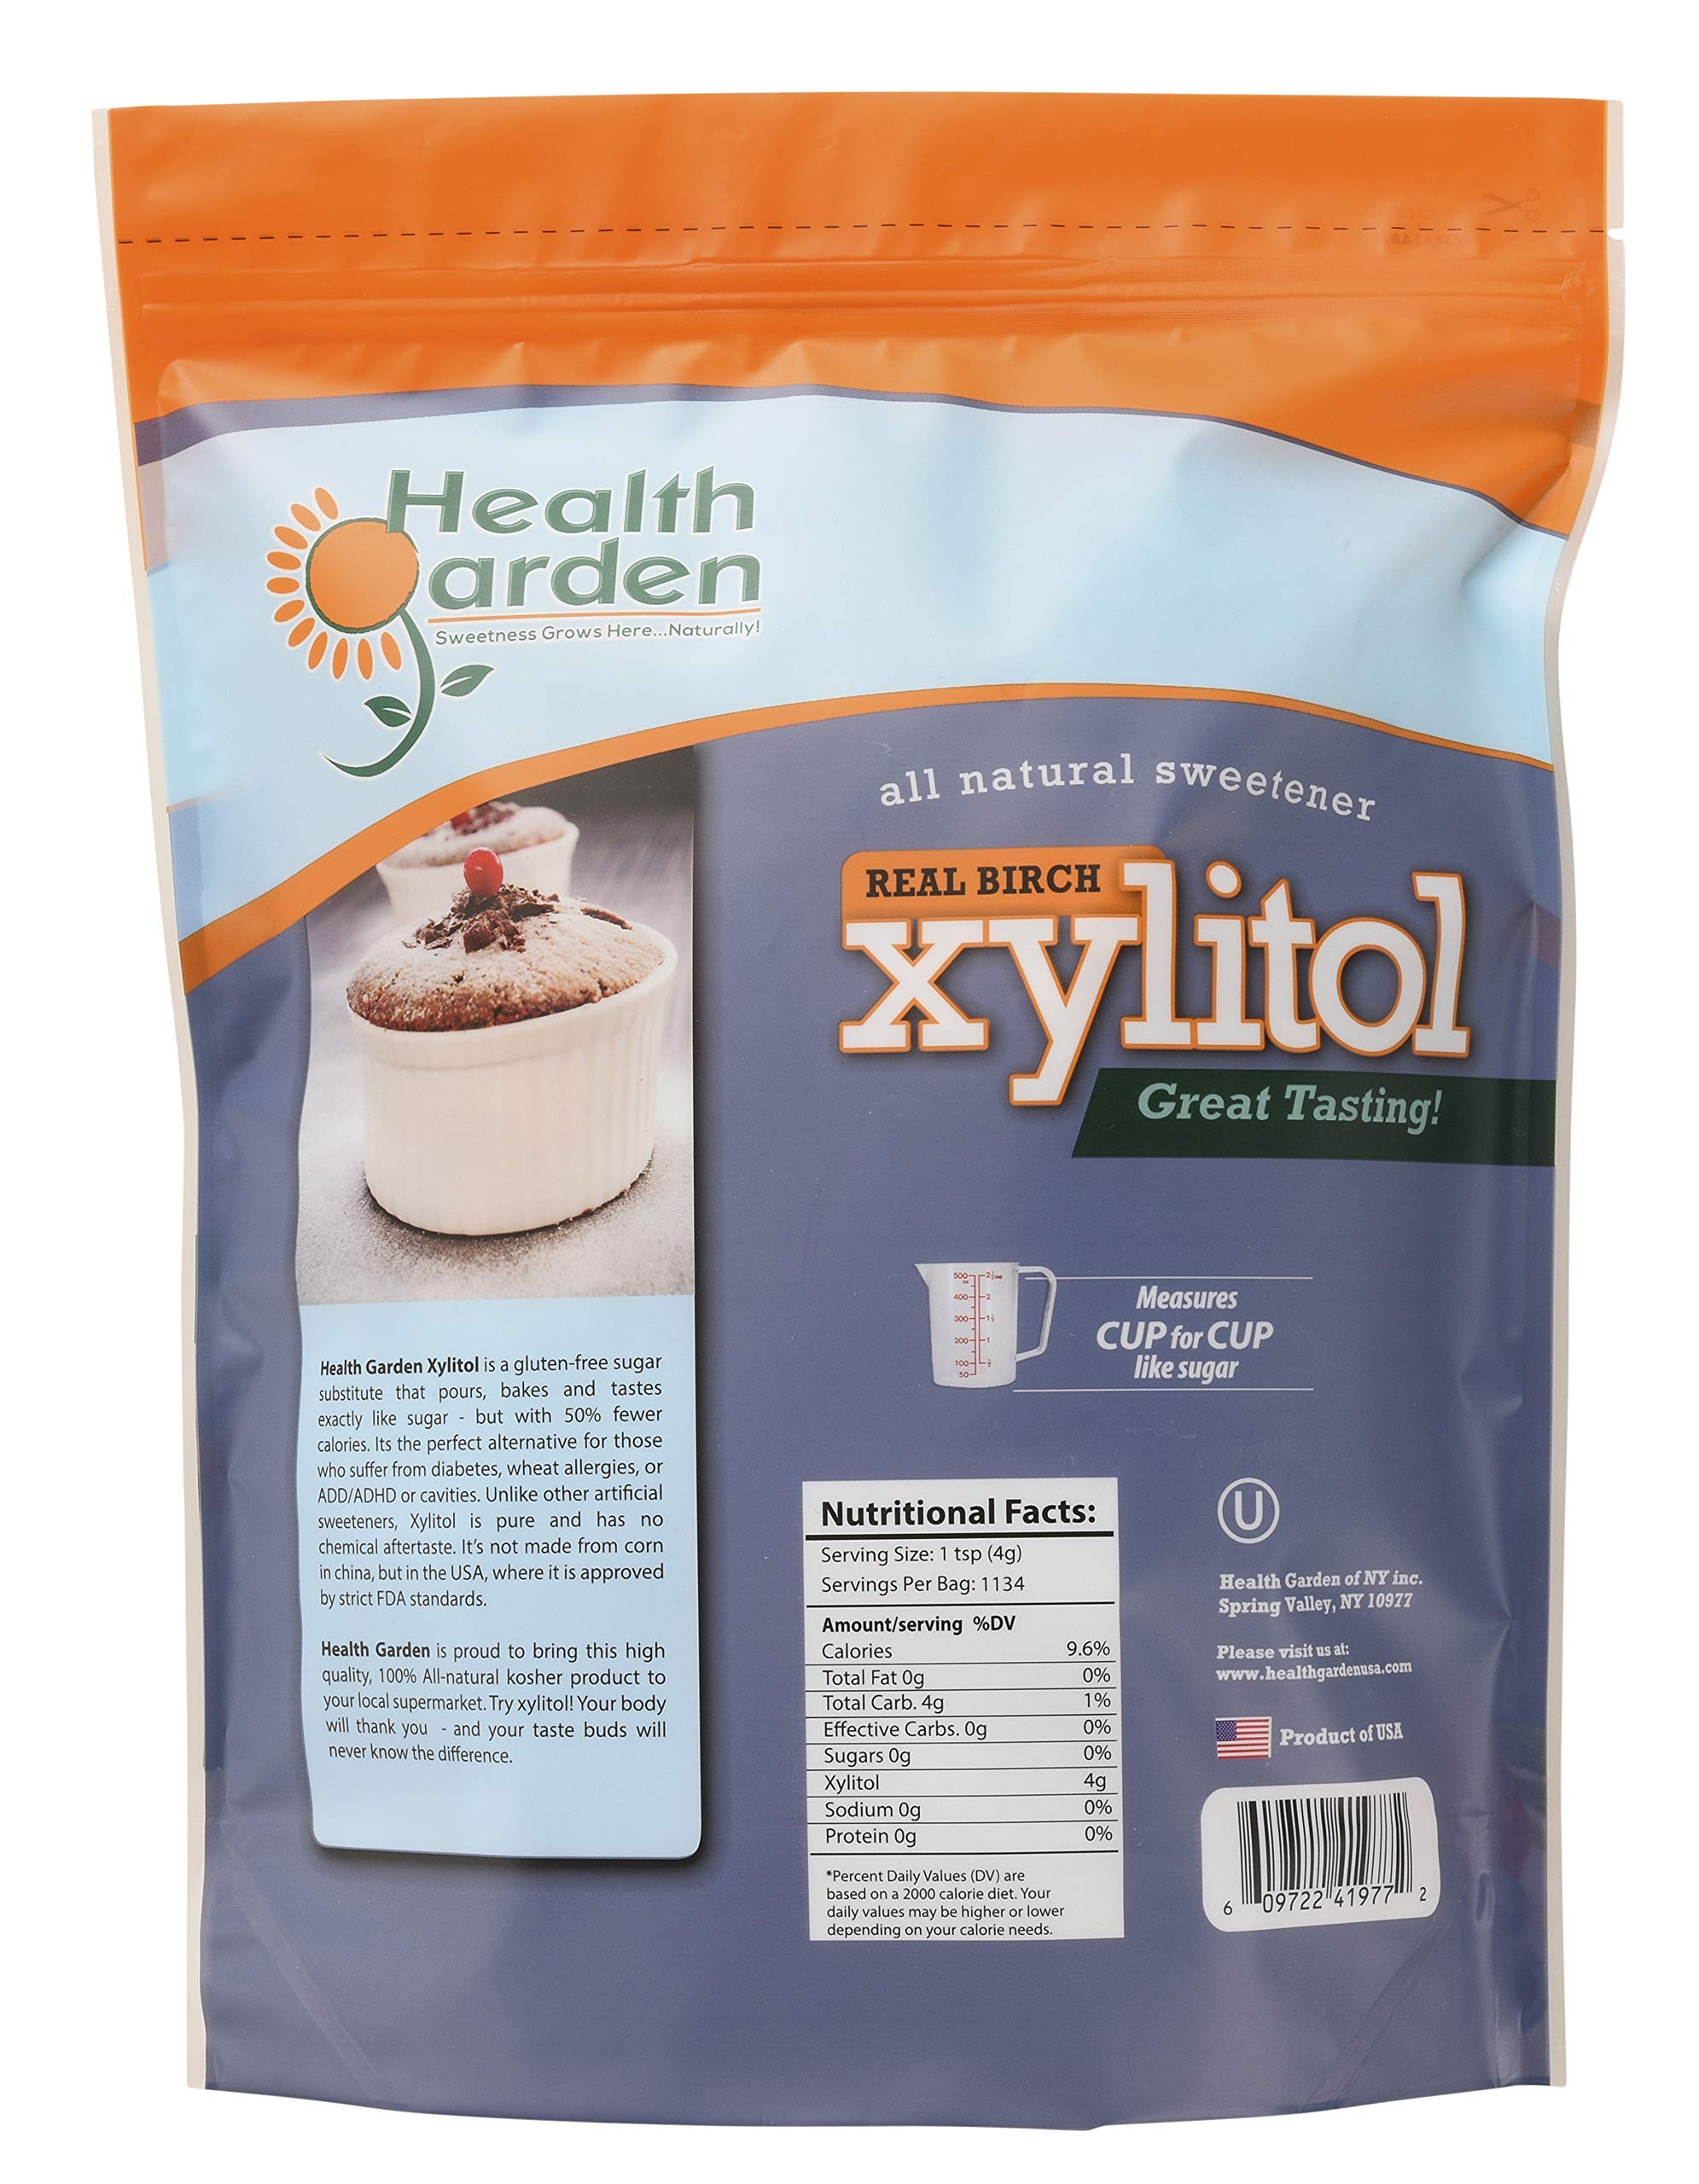 Health Garden Birch Xylitol Sugar Free Sweetener, All Natural, Non GMO (Not from Corn (10 LB) by HEALTH GARDEN (Image #4)